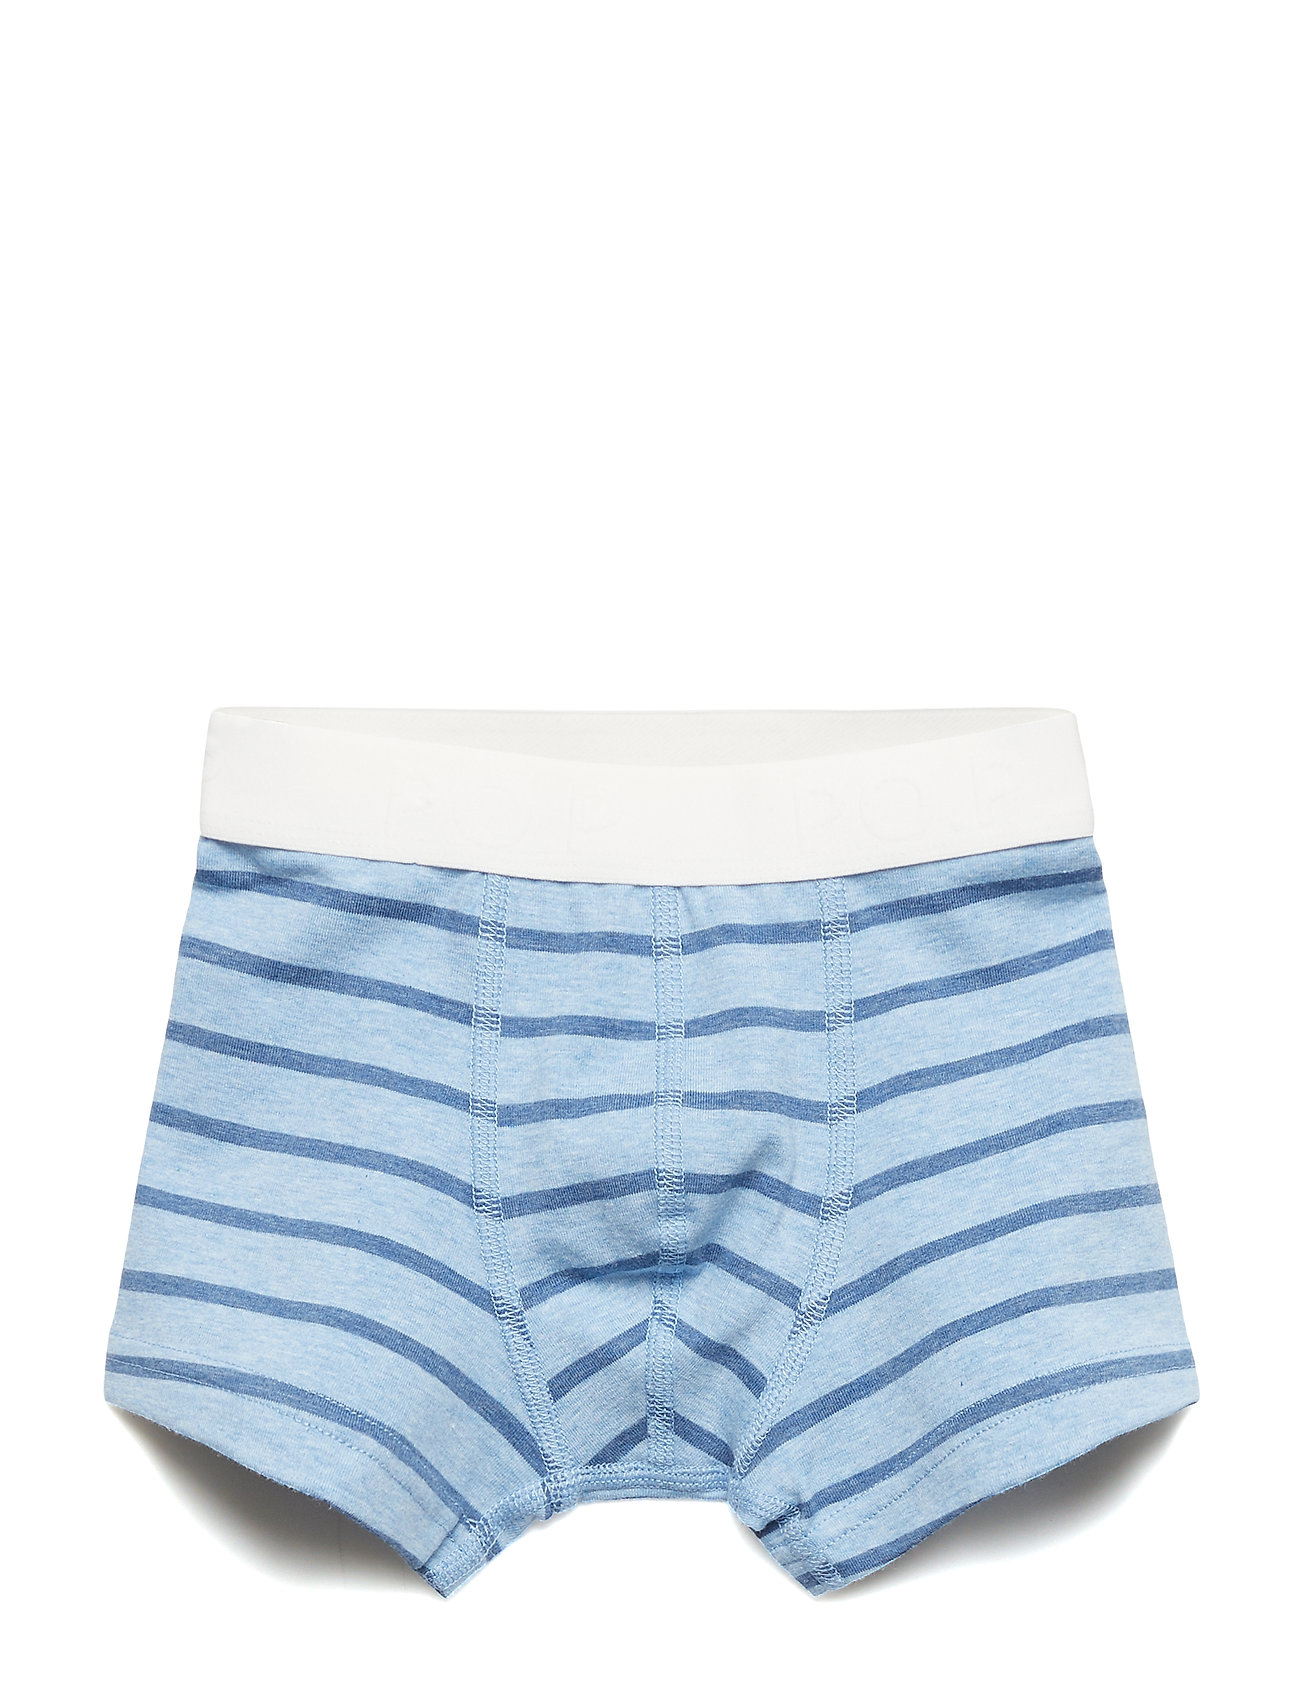 Polarn O. Pyret Boxer PO.P Striped Preschool - CELESTIAL BLUE